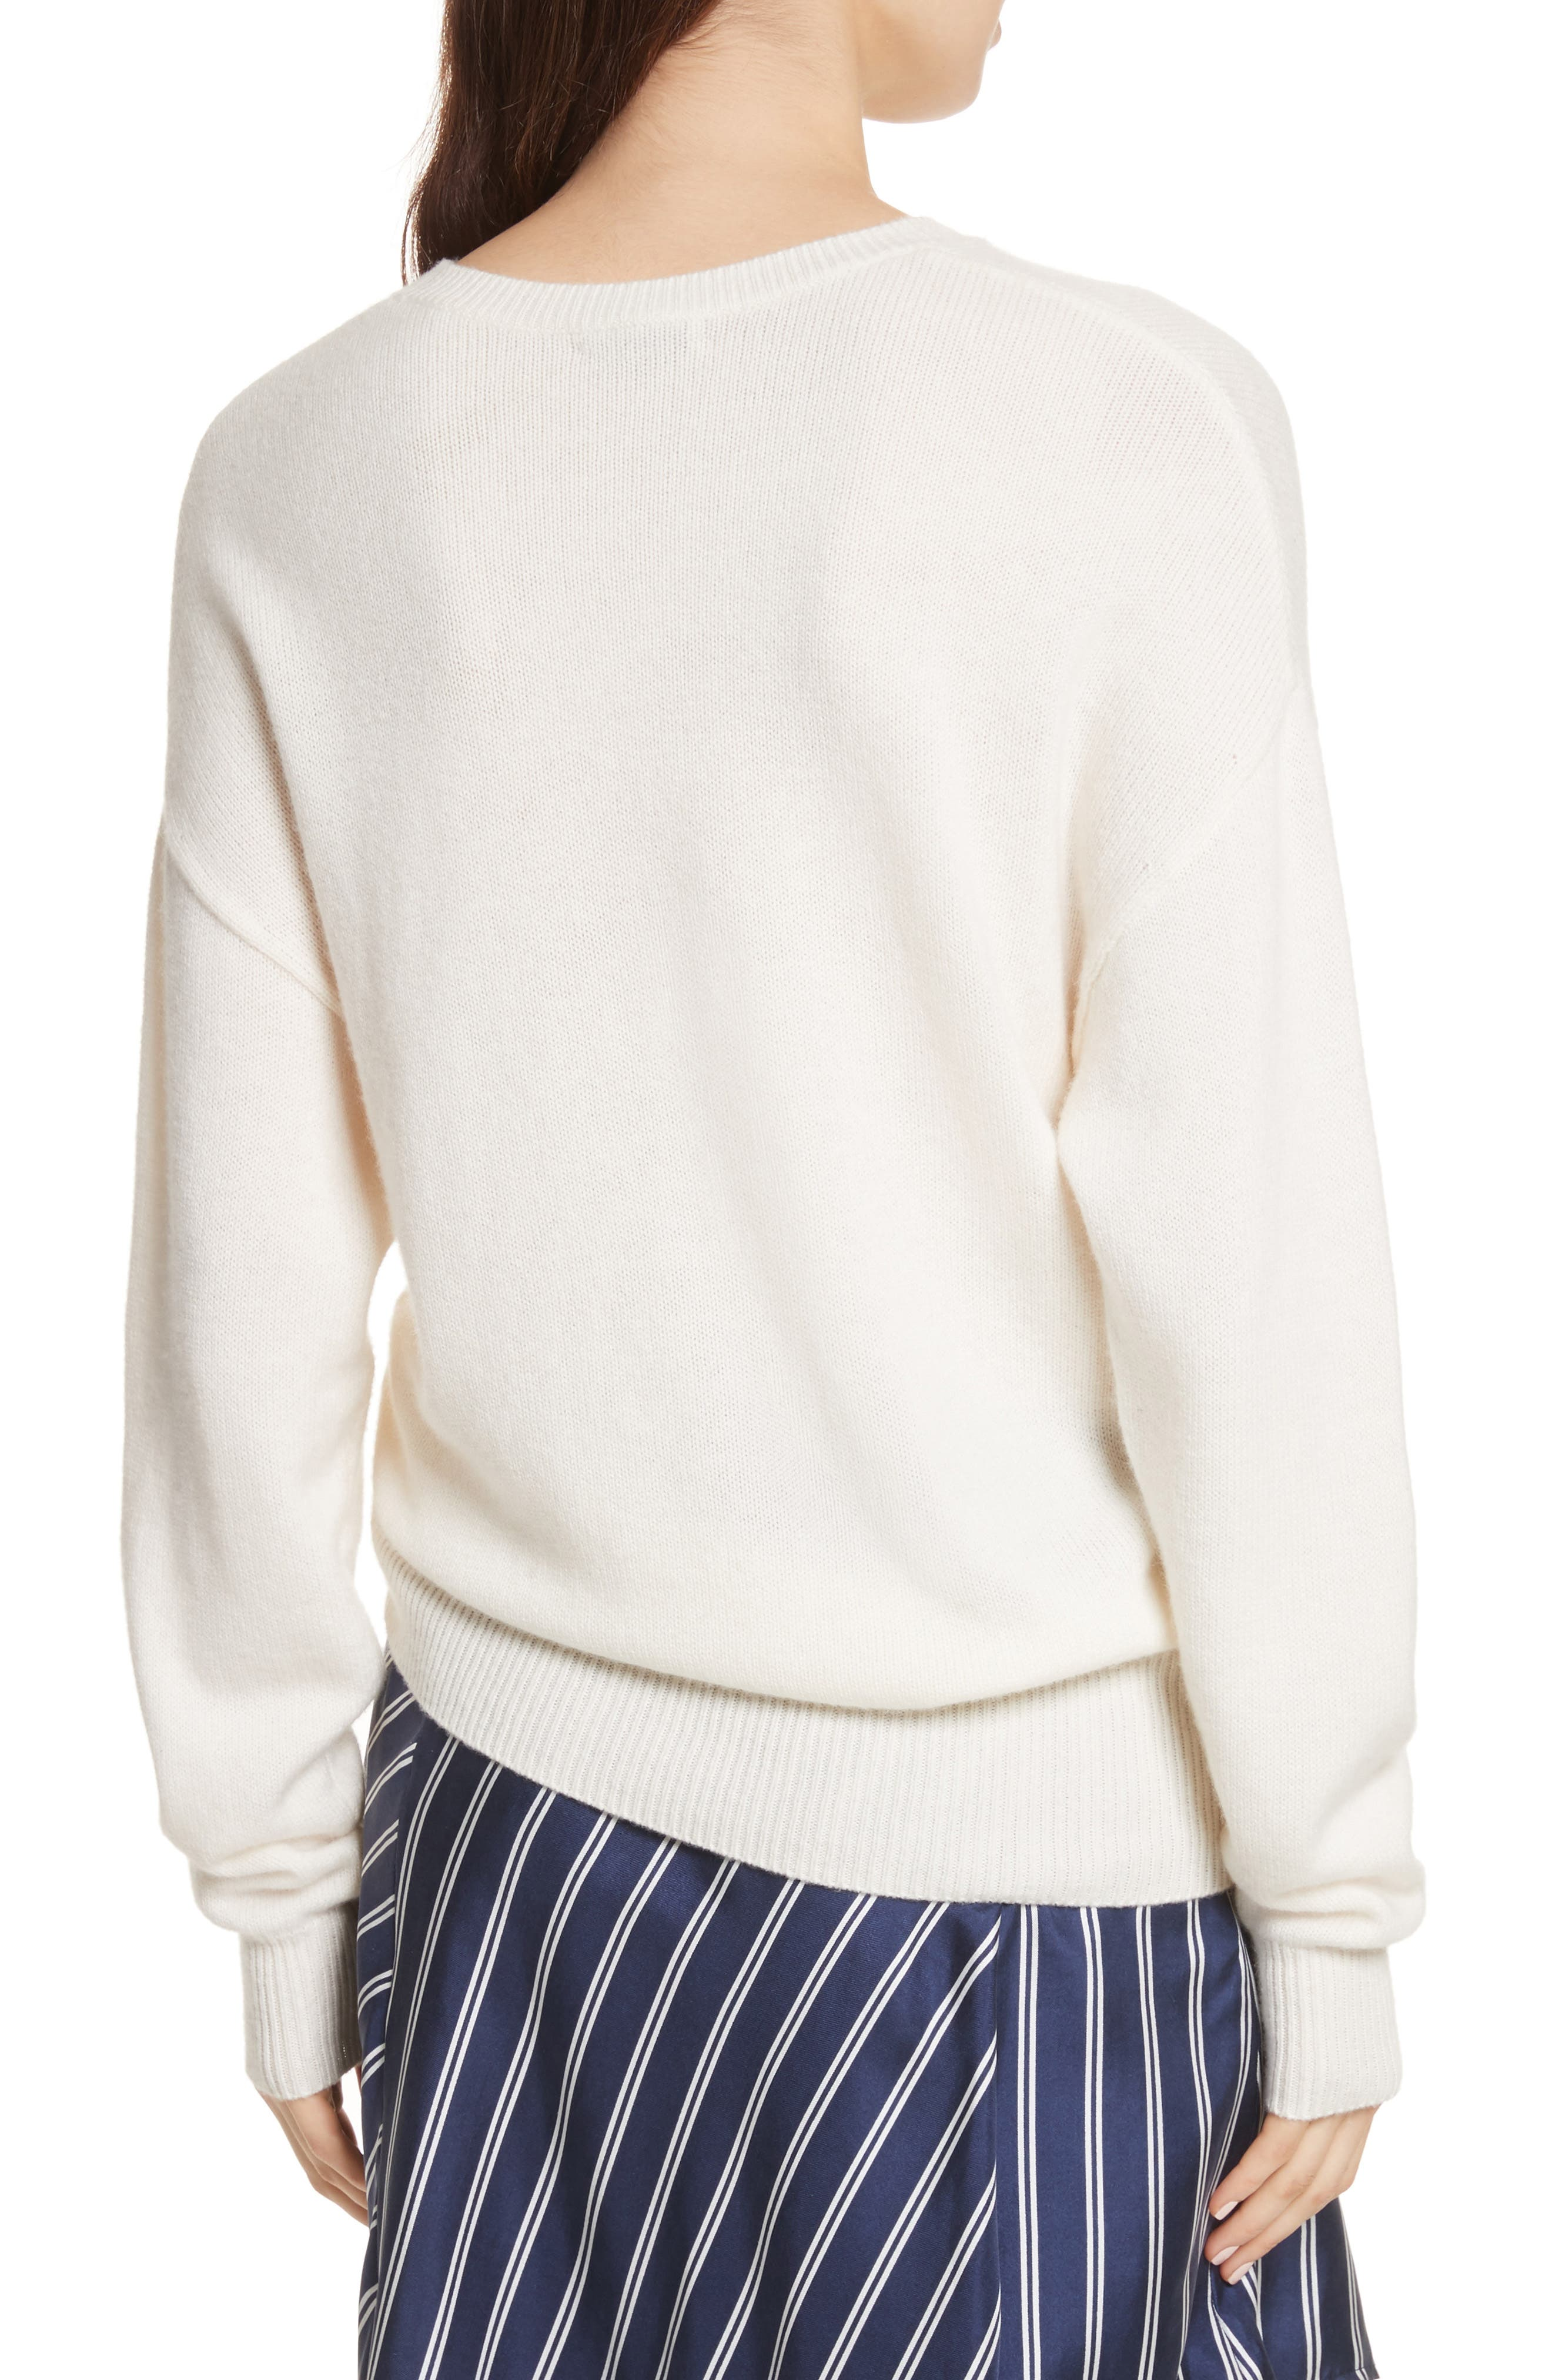 Iphis Wool & Cashmere Sweater,                             Alternate thumbnail 2, color,                             Porcelain